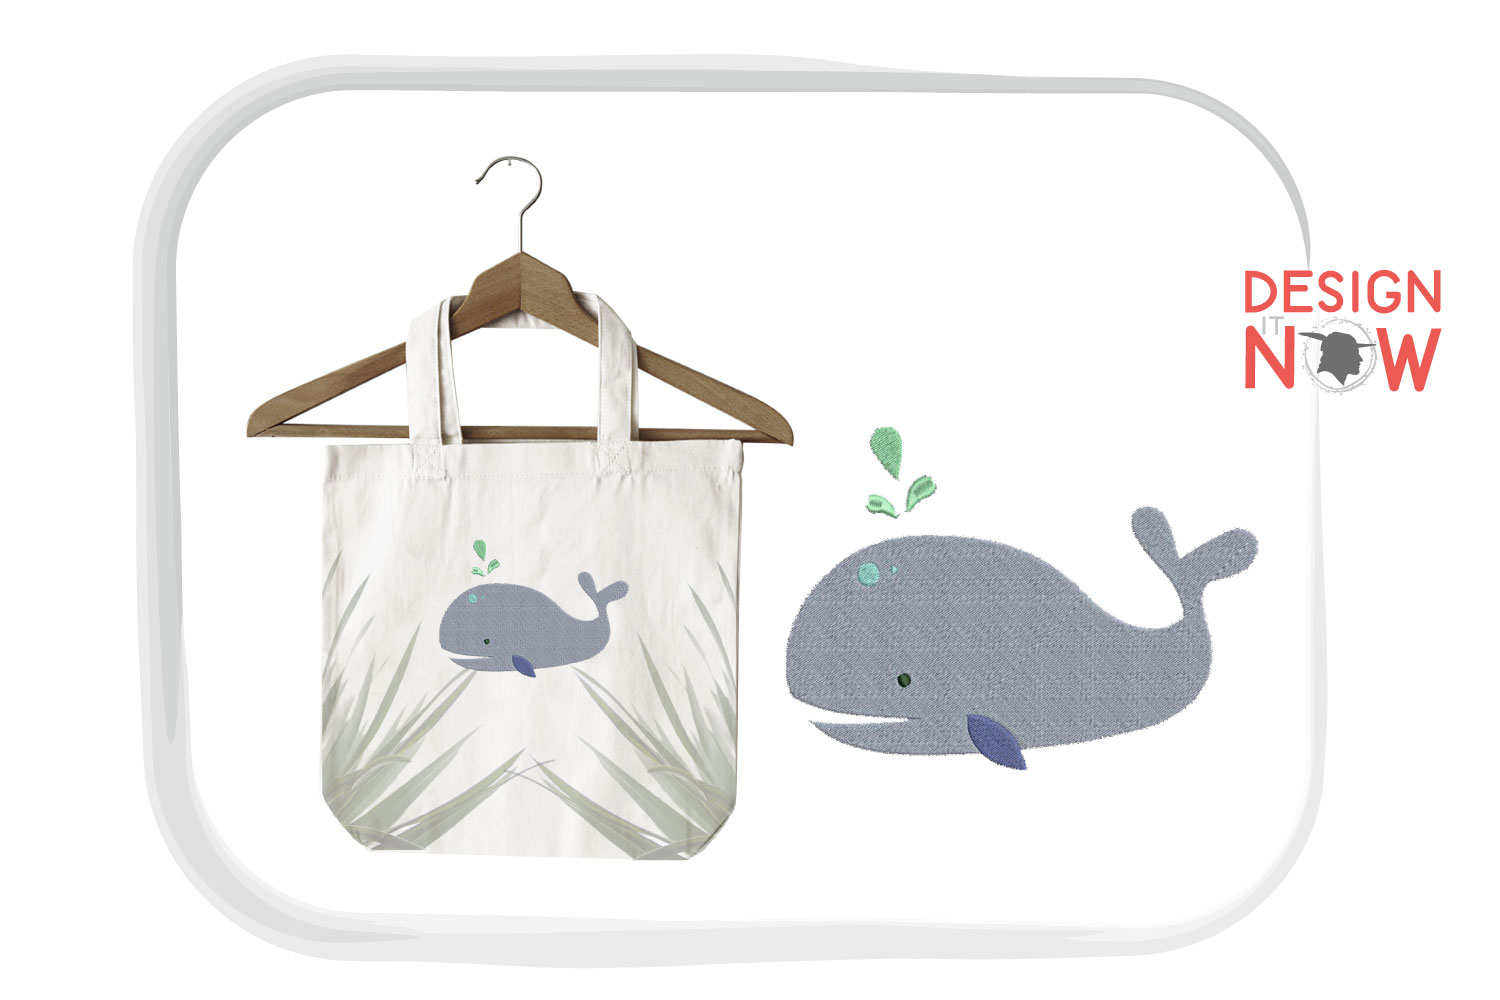 Whale Embroidery Design, Fish Embroidery Design, Sea example image 2